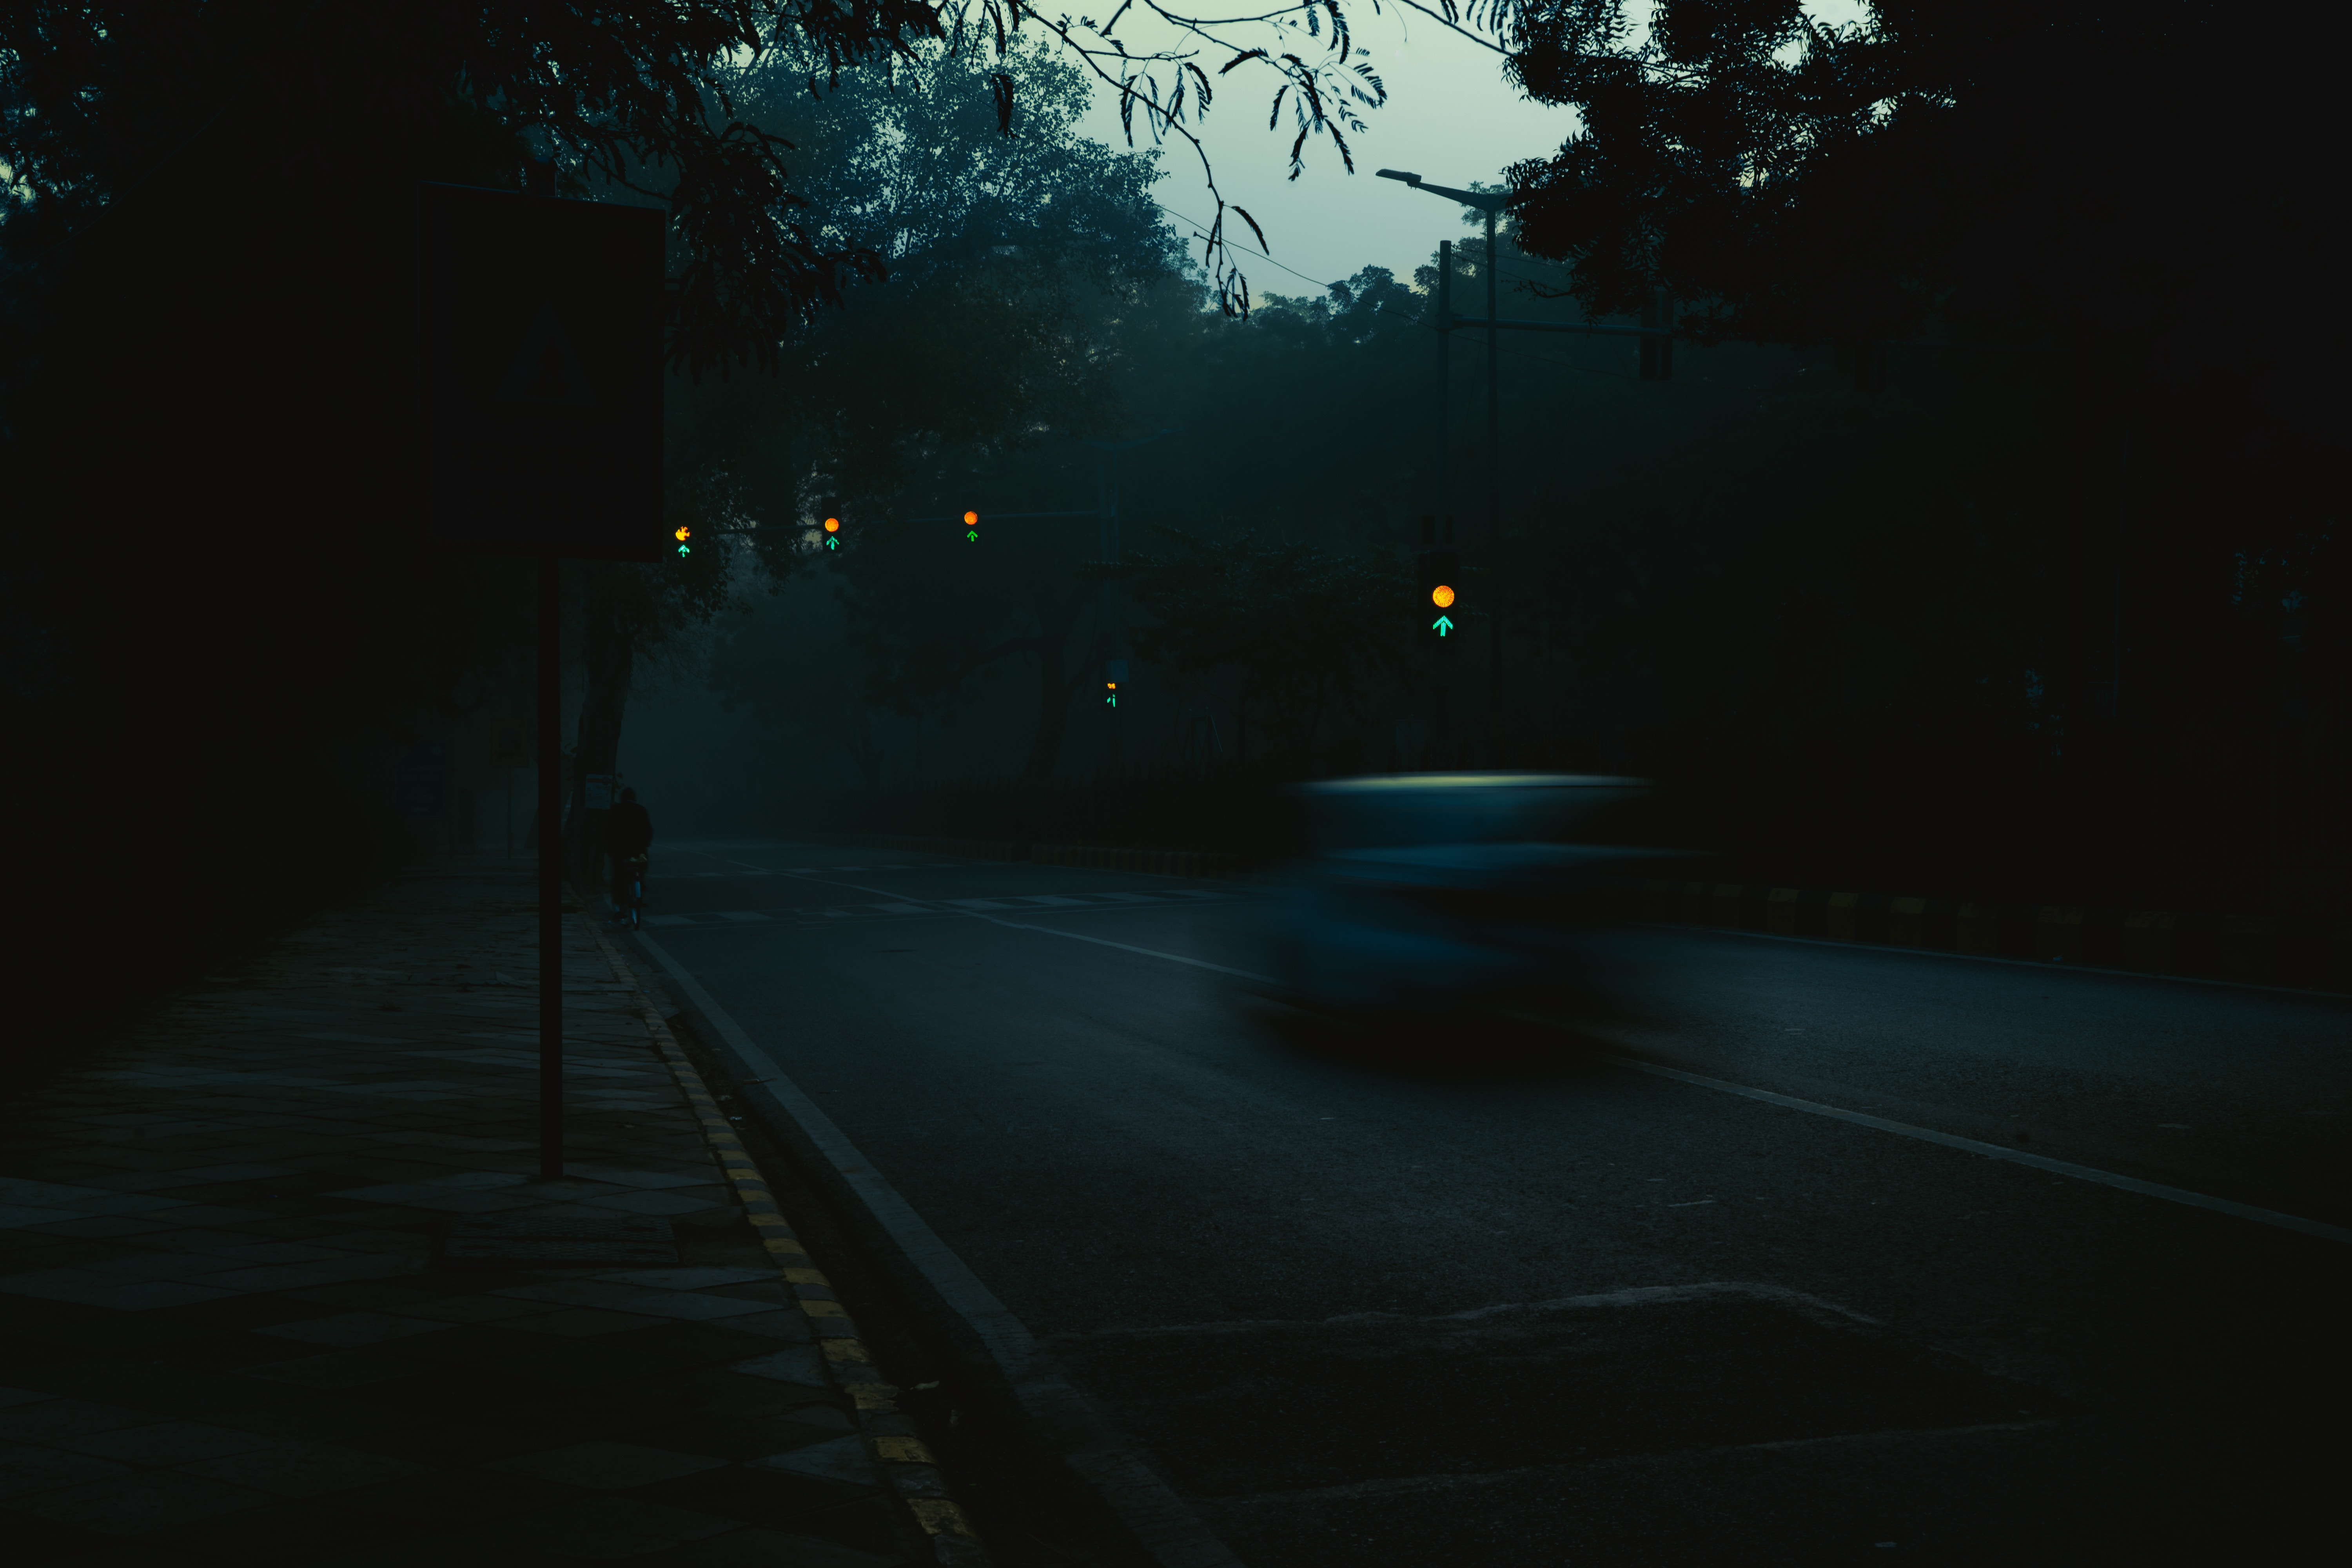 66961 download wallpaper Dark, Car, Silhouette, Traffic, Movement, Gloomy screensavers and pictures for free